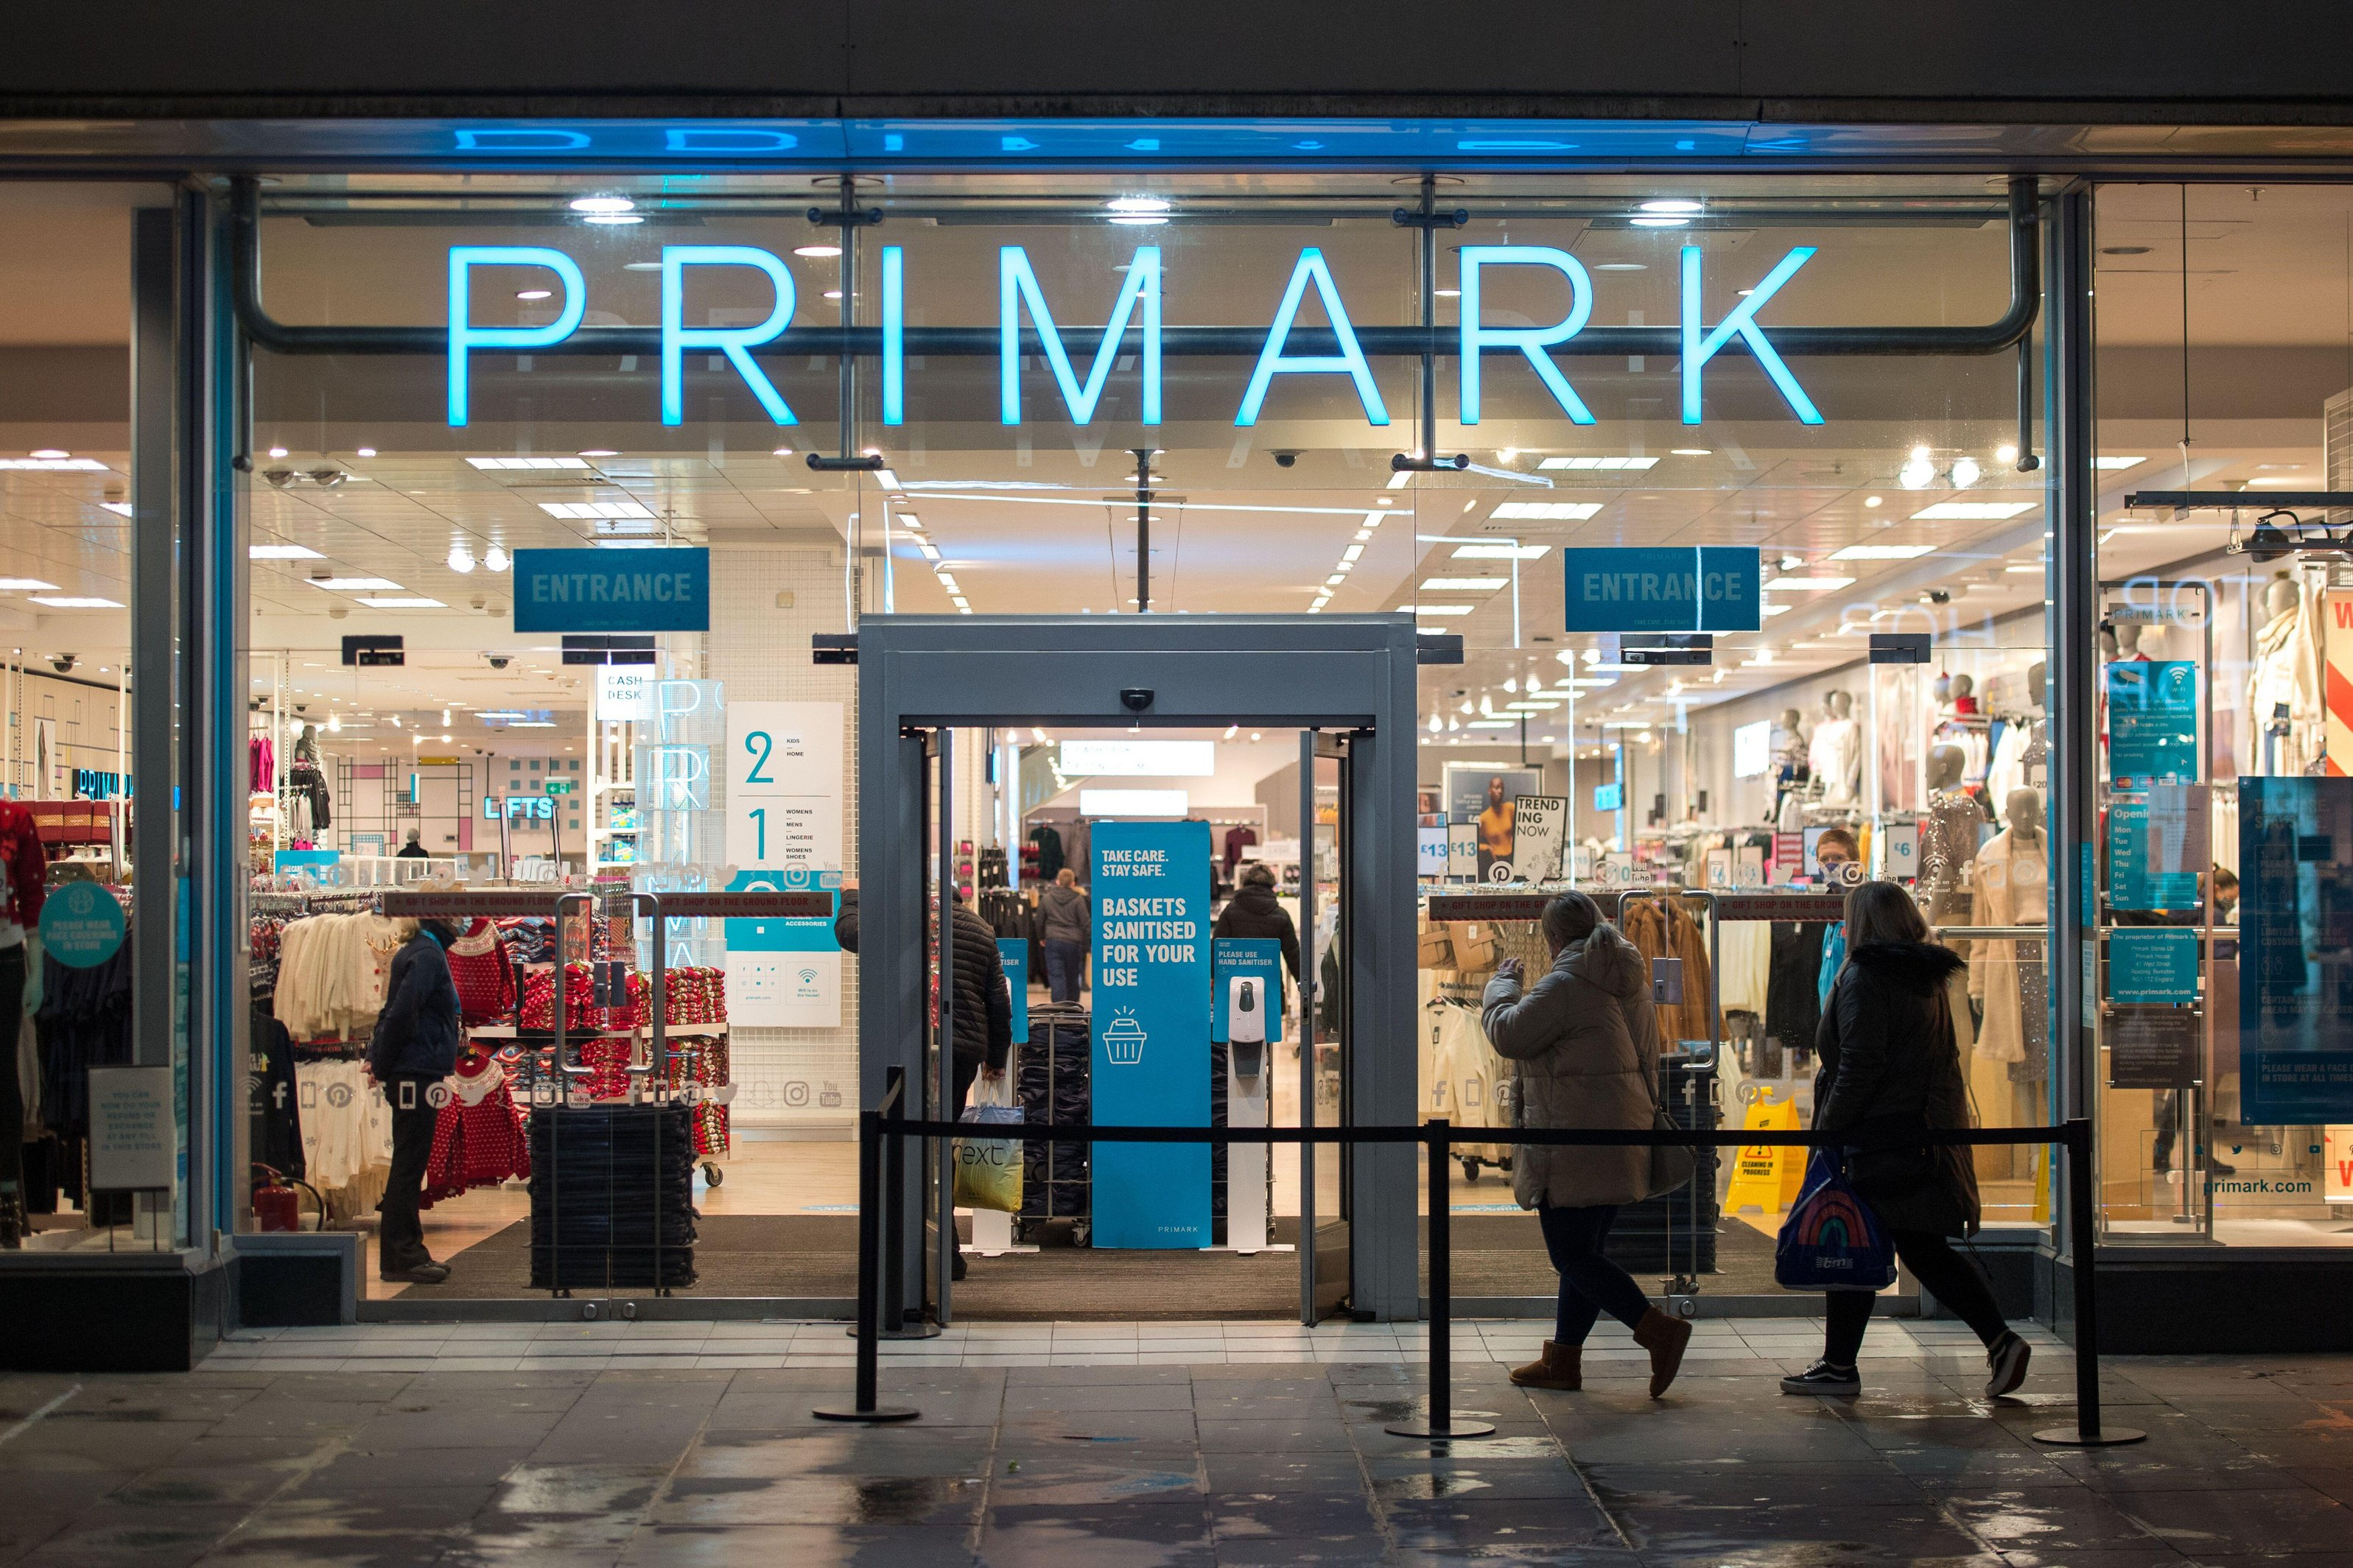 Primark customers will have to wait until restrictions are eased before they can shop at the retailer again